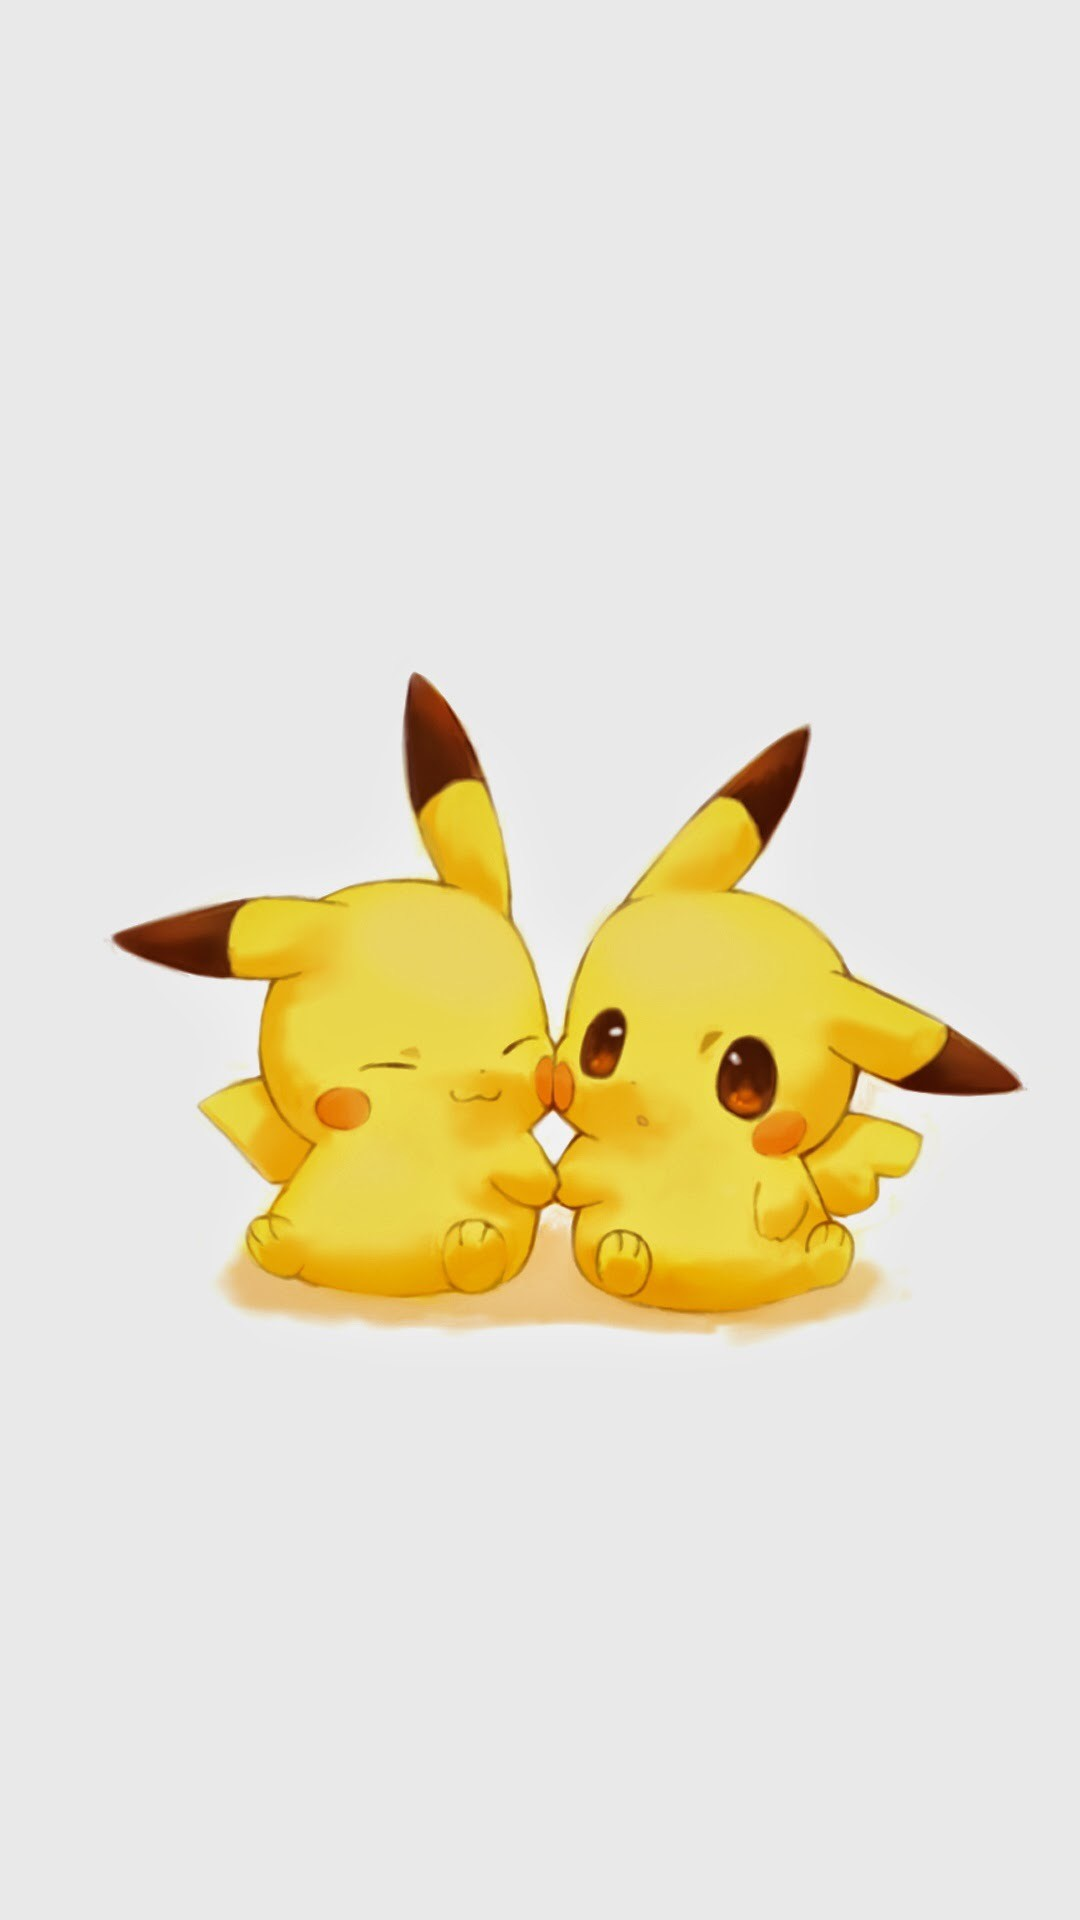 1080x1920 Tap Image For More Funny Cute Pikachu Pikachu Mobile For Iphone S C